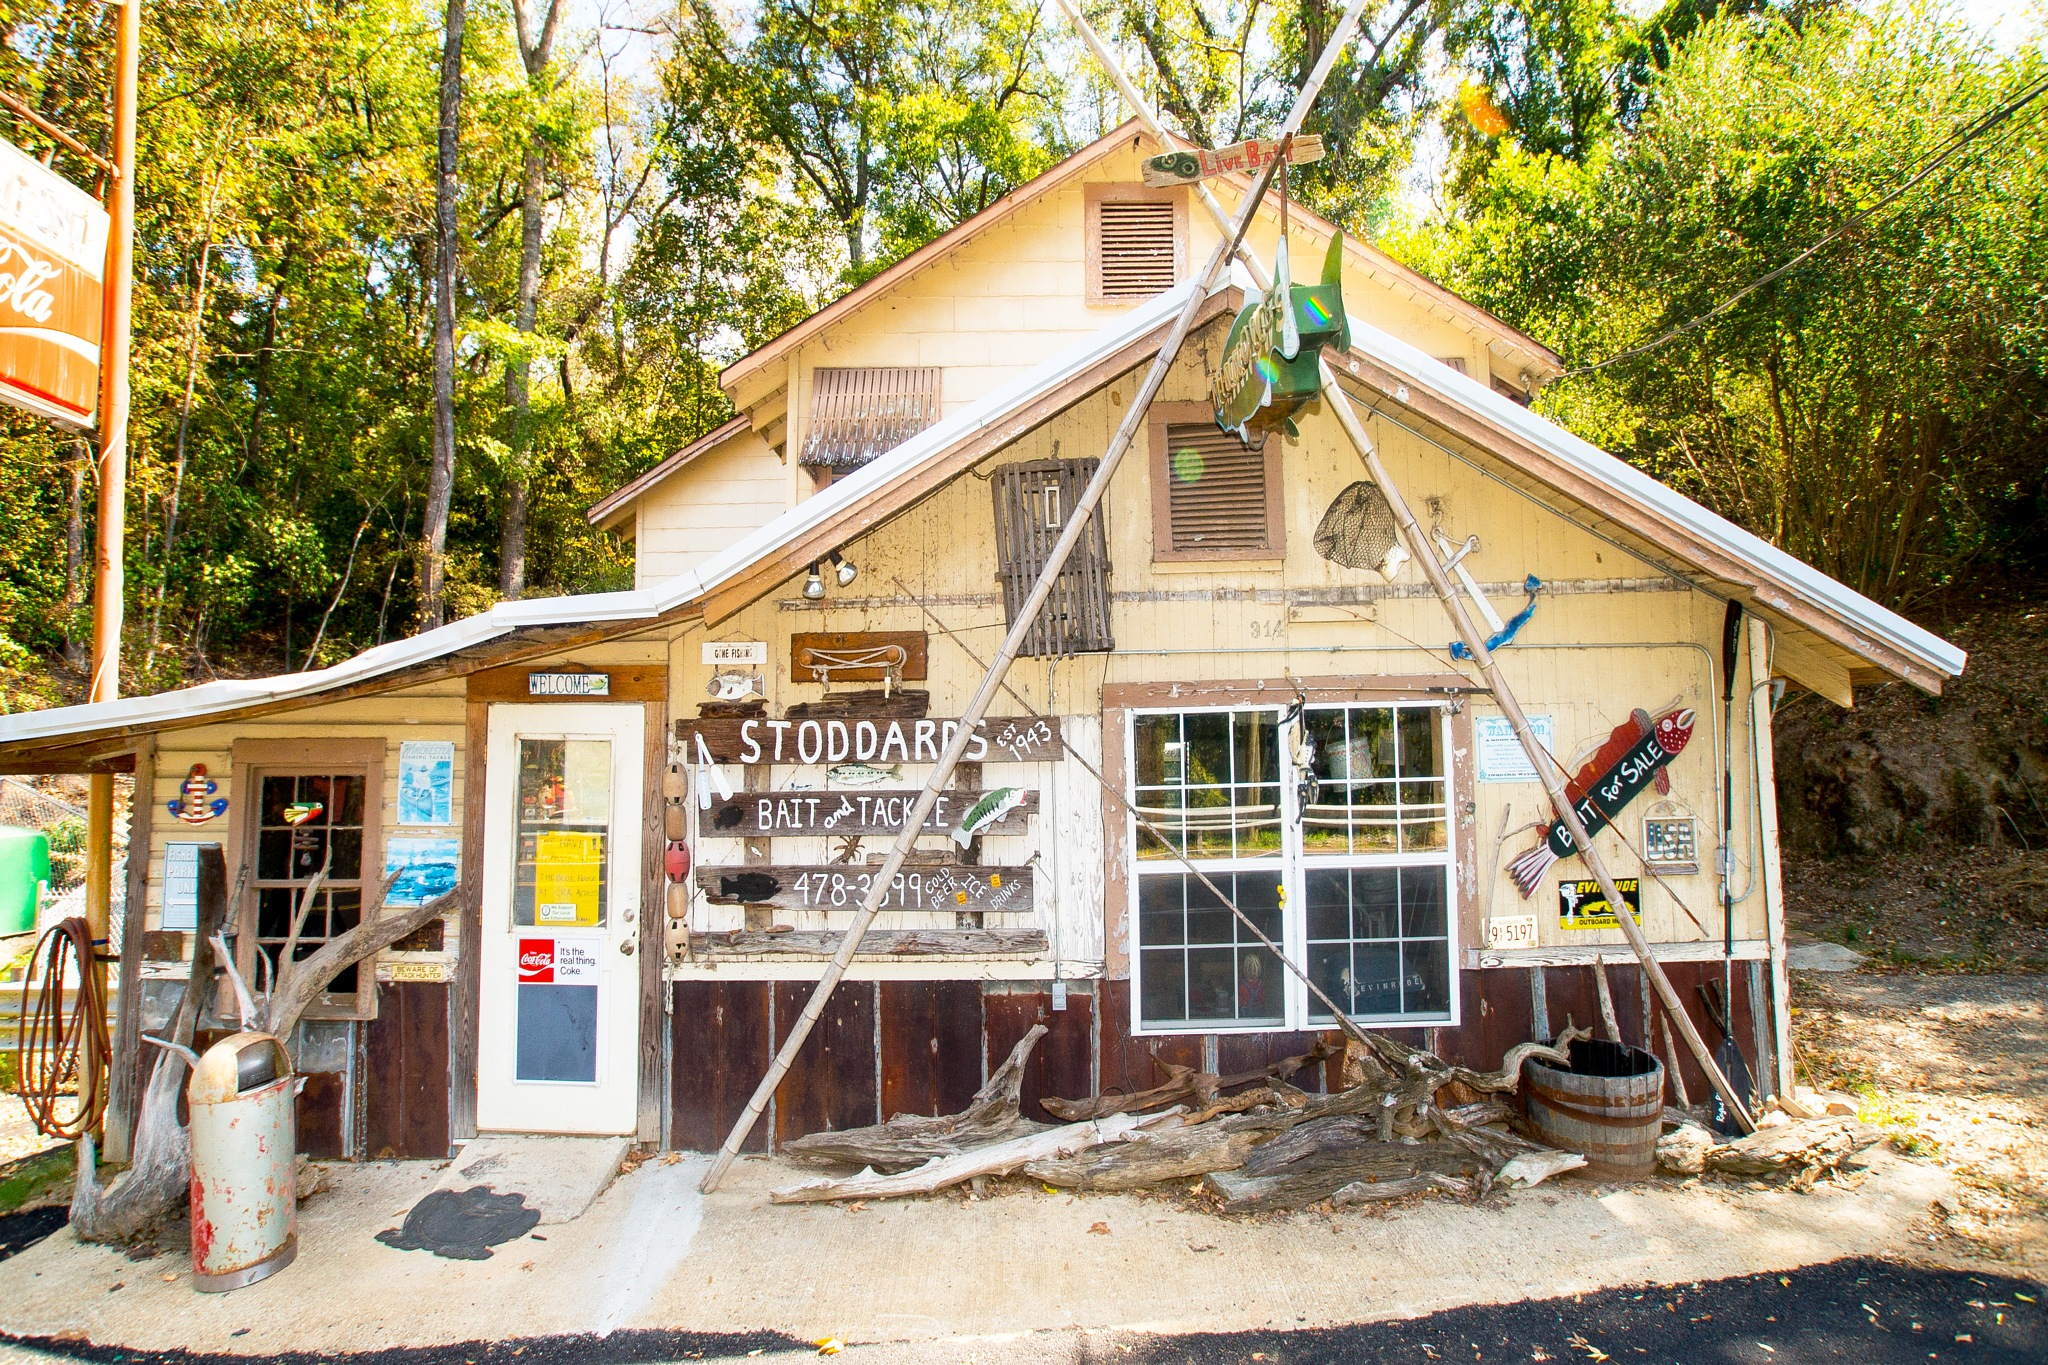 Stoddards Bait & Tackle est. 1943 by mfontaine